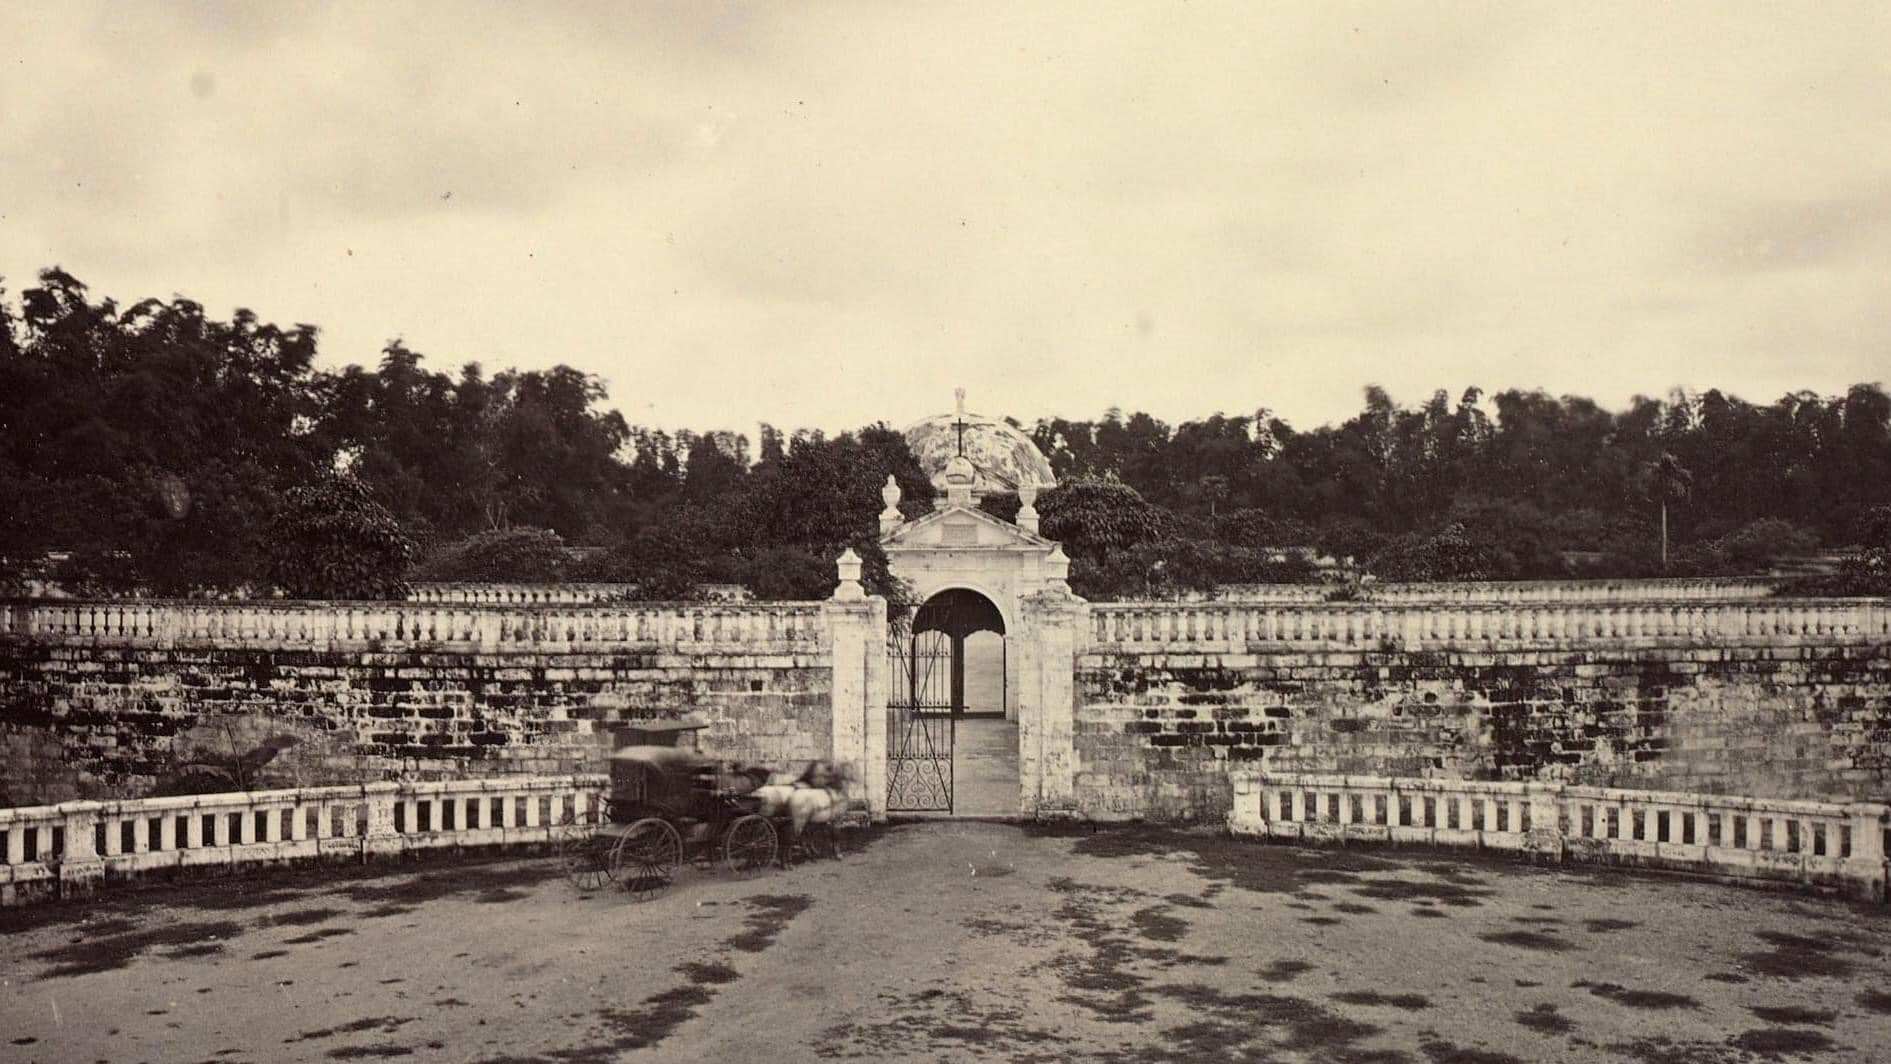 Archival photo of the main entrance of Paco Cemetery